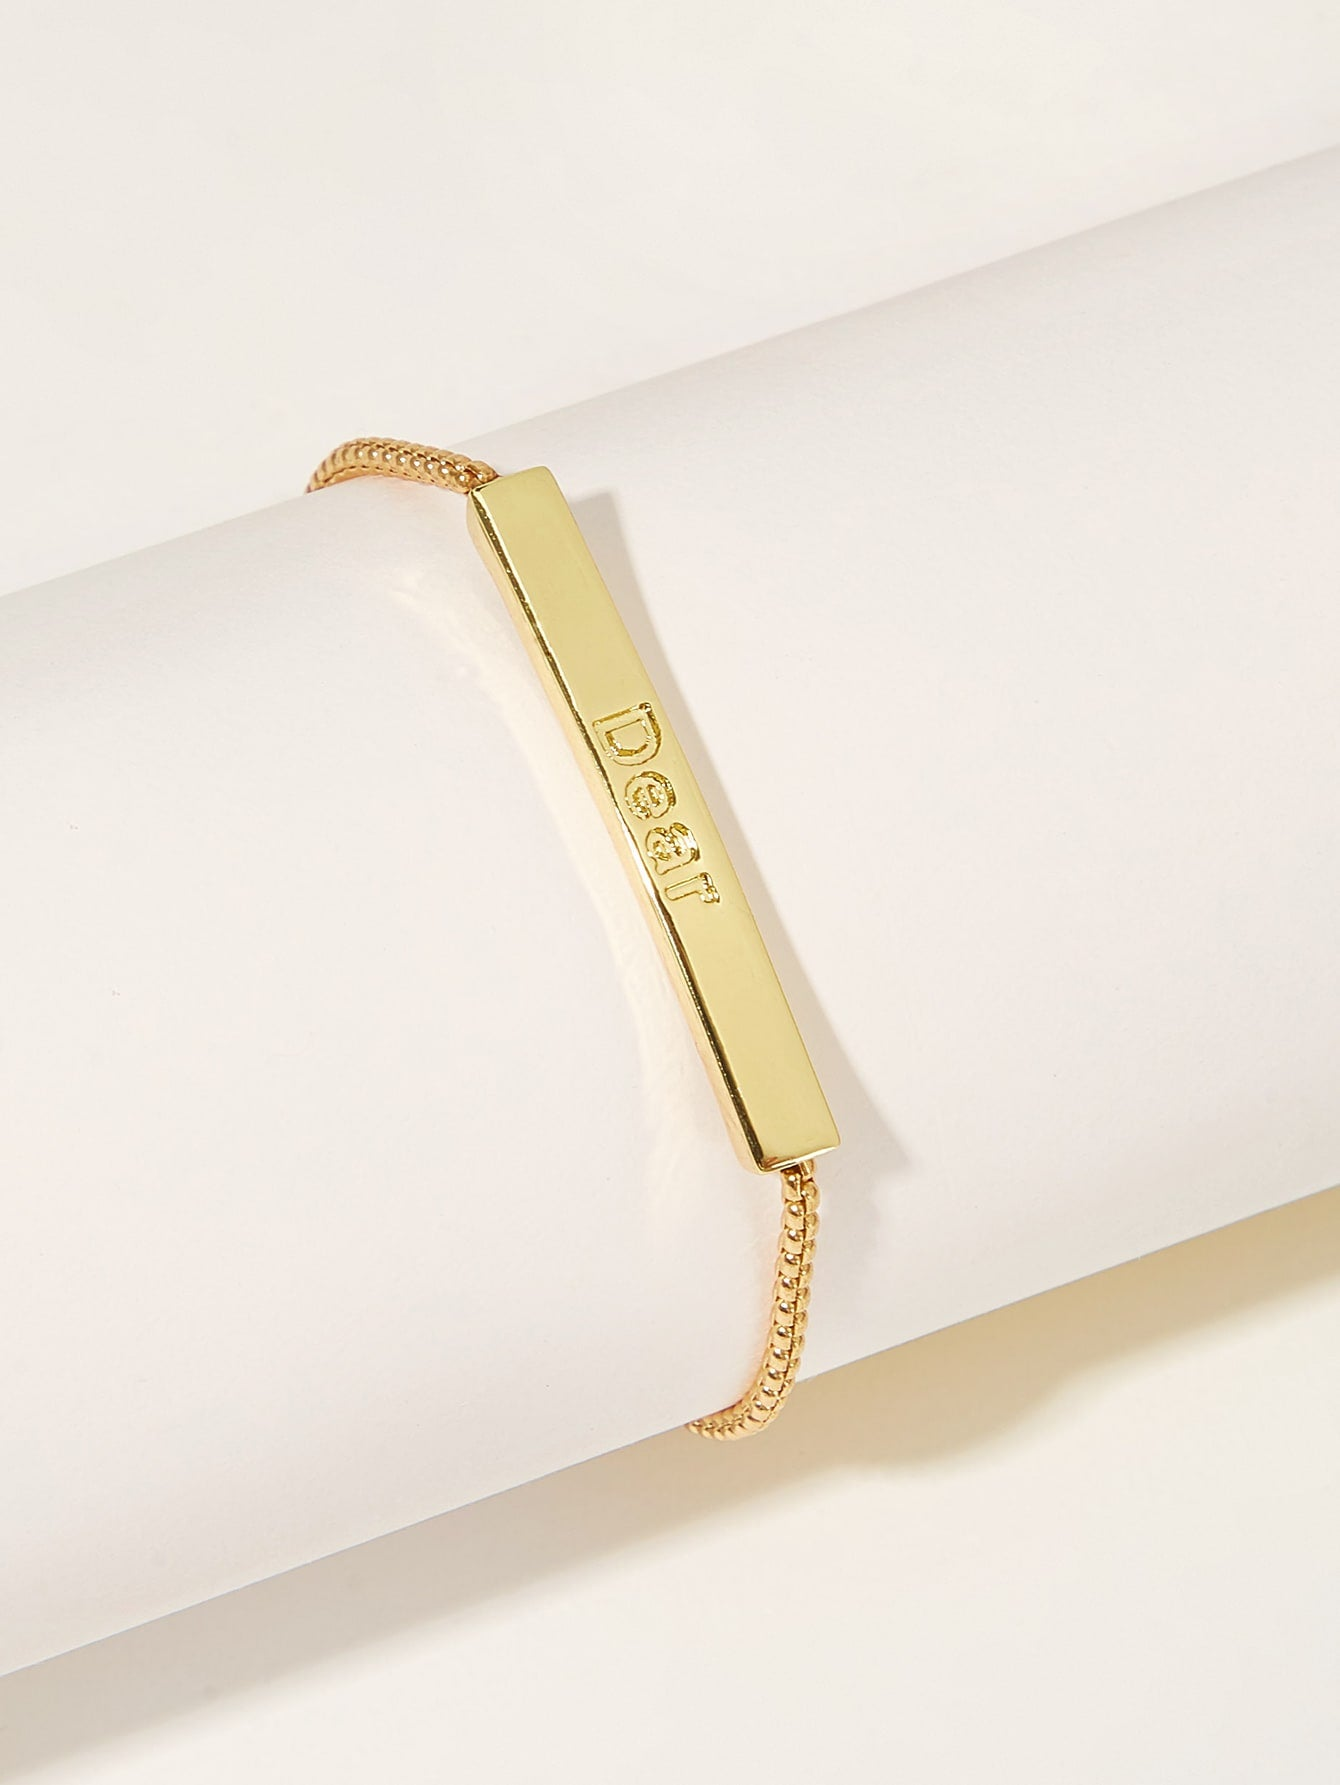 1pc Letter Engraved Bar Golden Adjustable Chain Bracelet